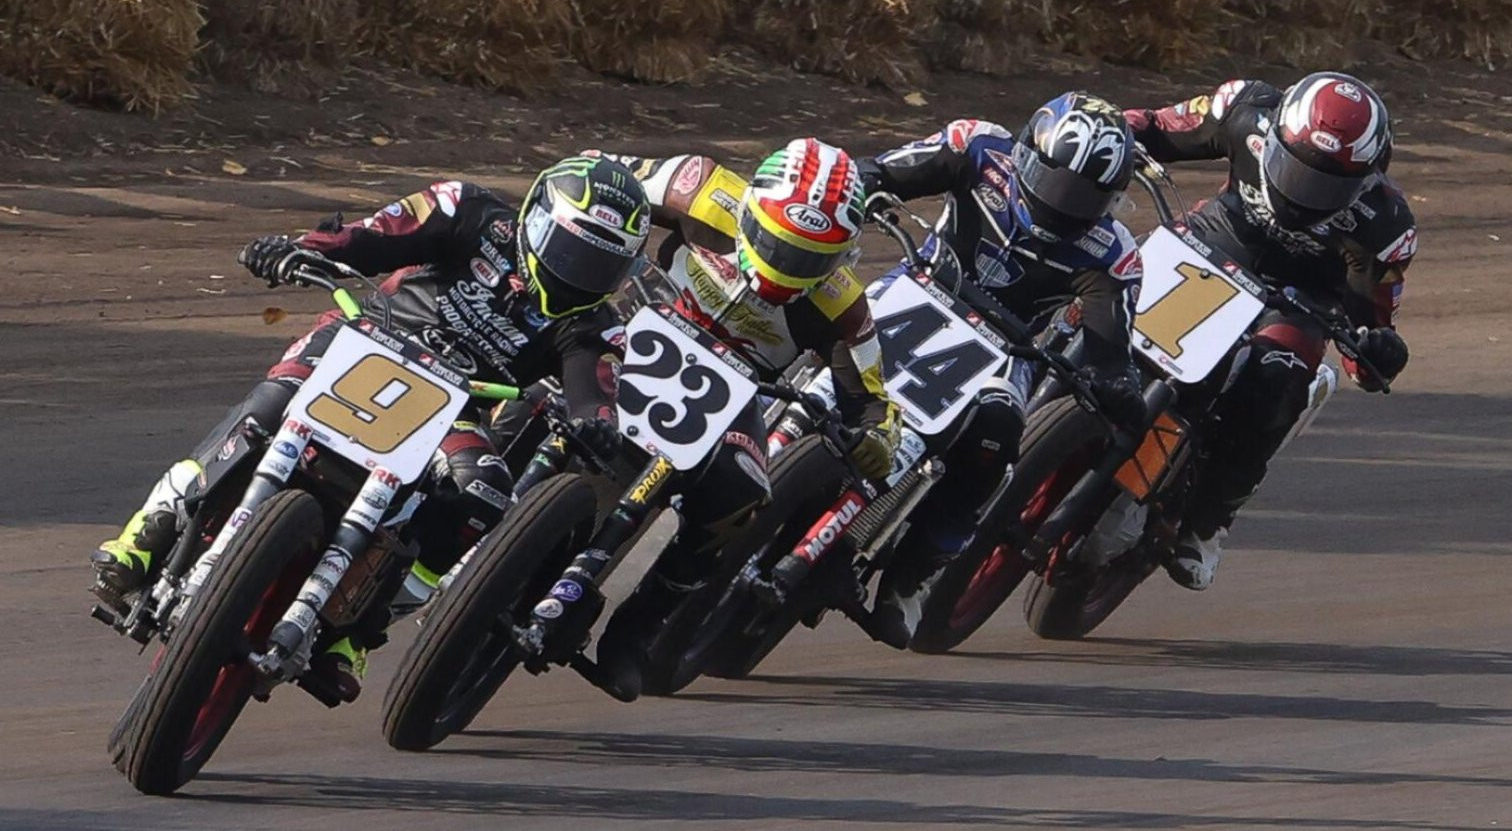 Jared Mees (9) leads Jeffrey Carver, Jr. (23), Brandon Robinson (44), and Briar Bauman (1) at the Springfield Mile in 2020. Photo by Brian J. Nelson, courtesy AFT.